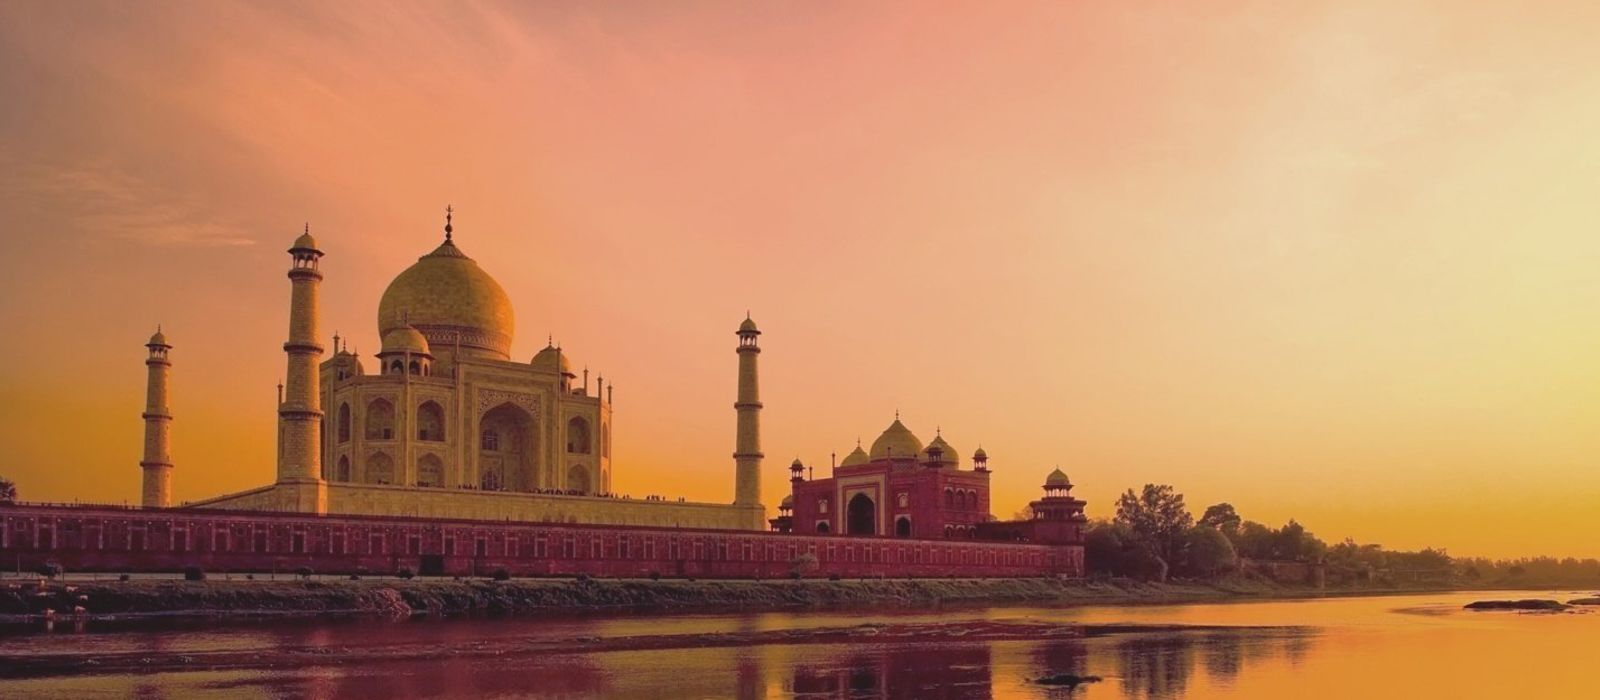 Taj Mahal Agra during sunset, India